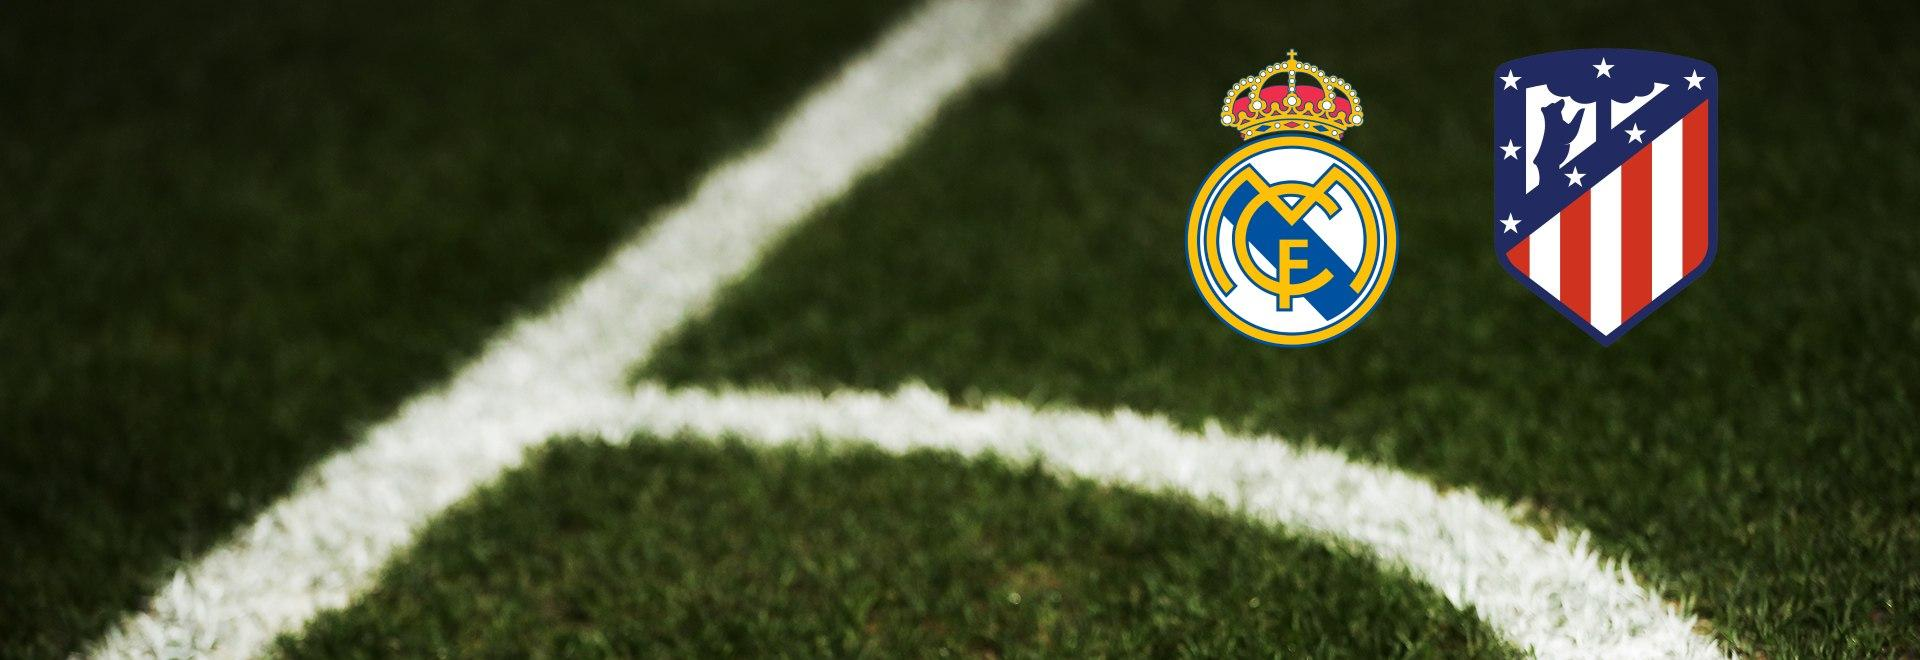 Real Madrid - Atletico Madrid. 13a g.